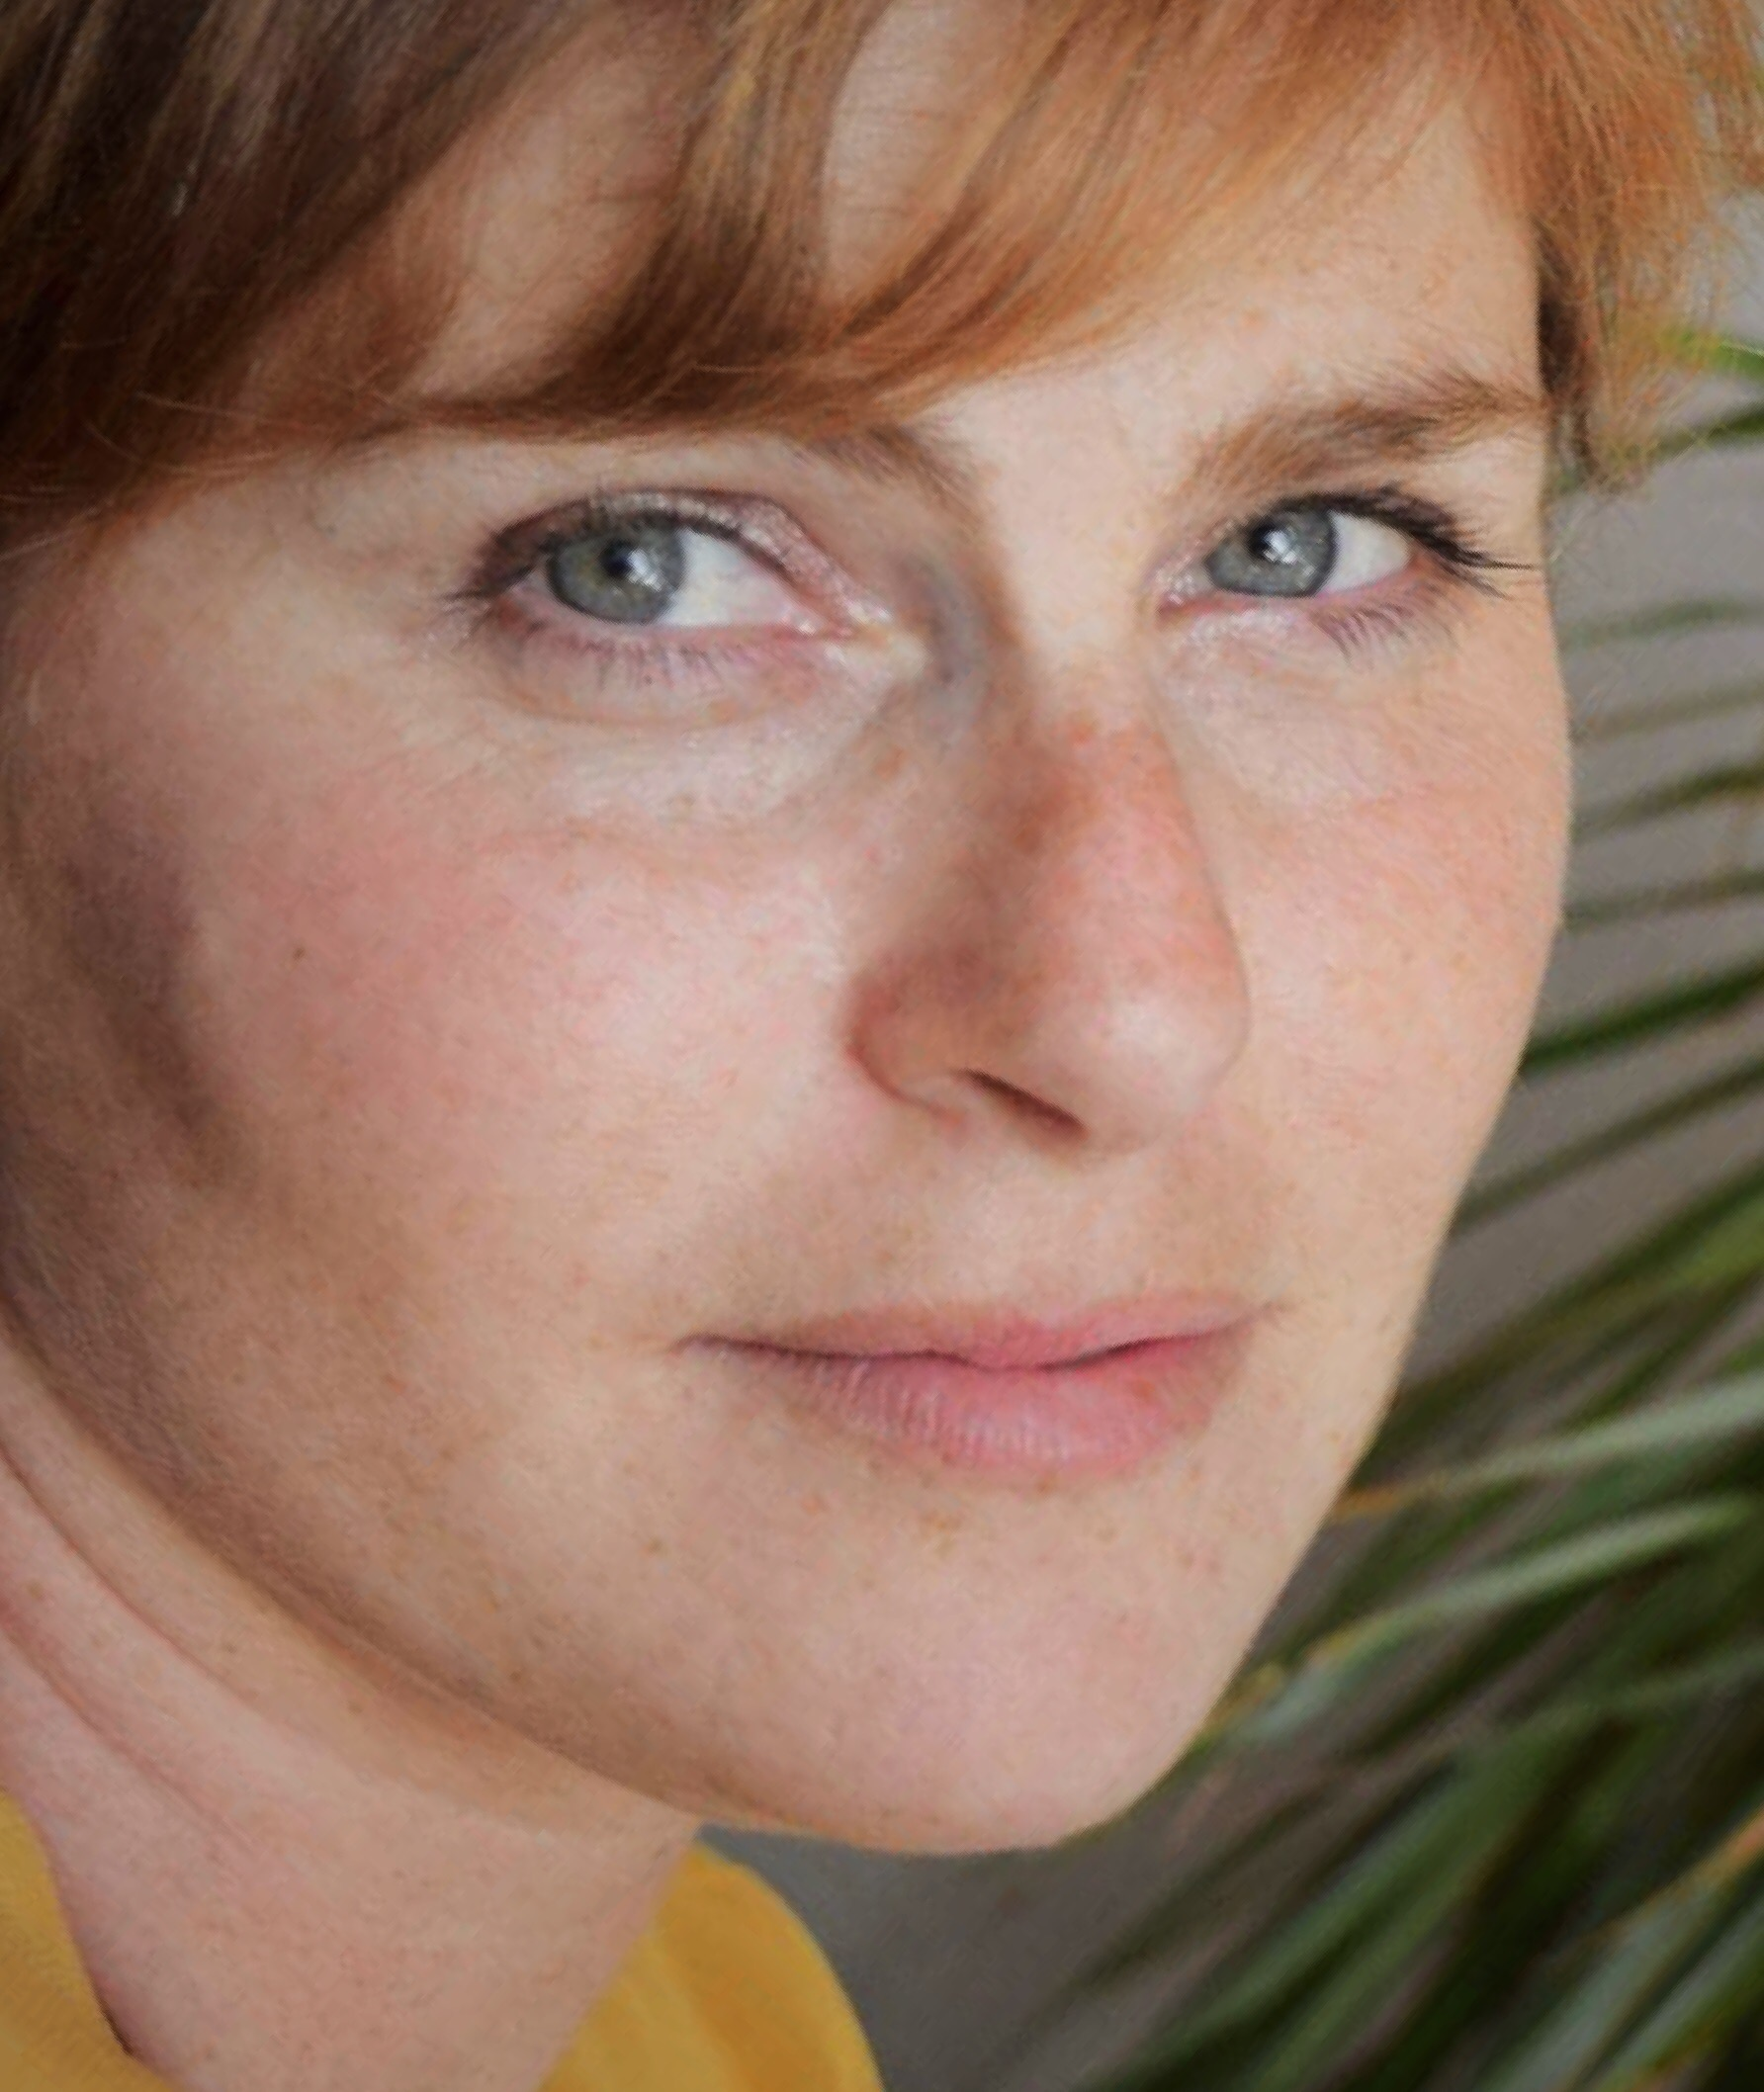 Mika Shiner, MFT - Expressionistic Arts & Somatic Psychotherapist for Adults and Children